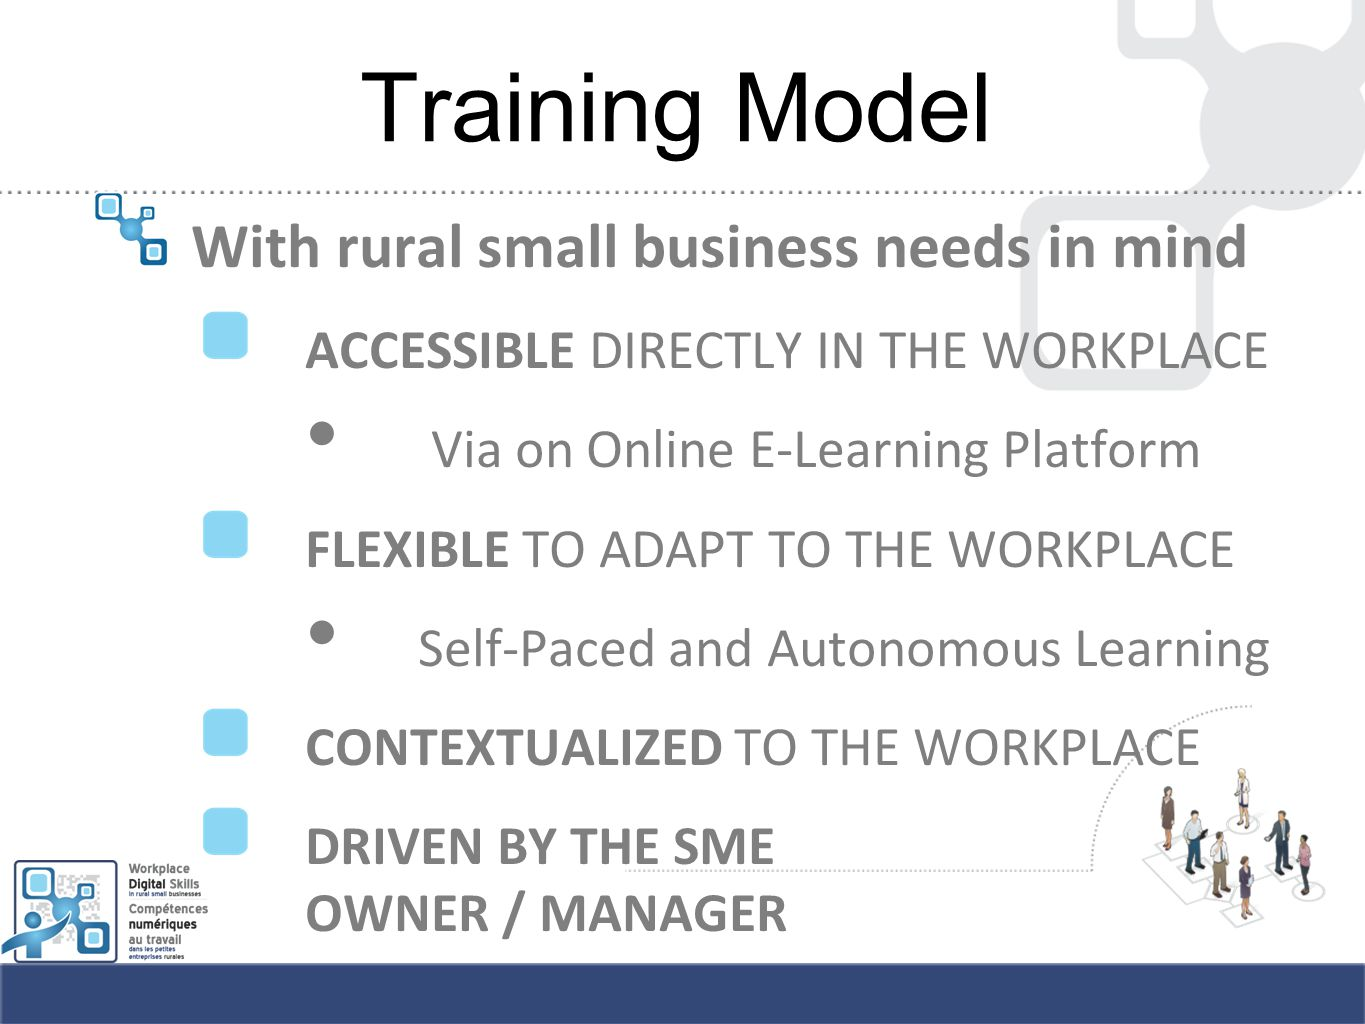 Training Model With rural small business needs in mind ACCESSIBLE DIRECTLY IN THE WORKPLACE Via on Online E-Learning Platform FLEXIBLE TO ADAPT TO THE WORKPLACE Self-Paced and Autonomous Learning CONTEXTUALIZED TO THE WORKPLACE DRIVEN BY THE SME OWNER / MANAGER